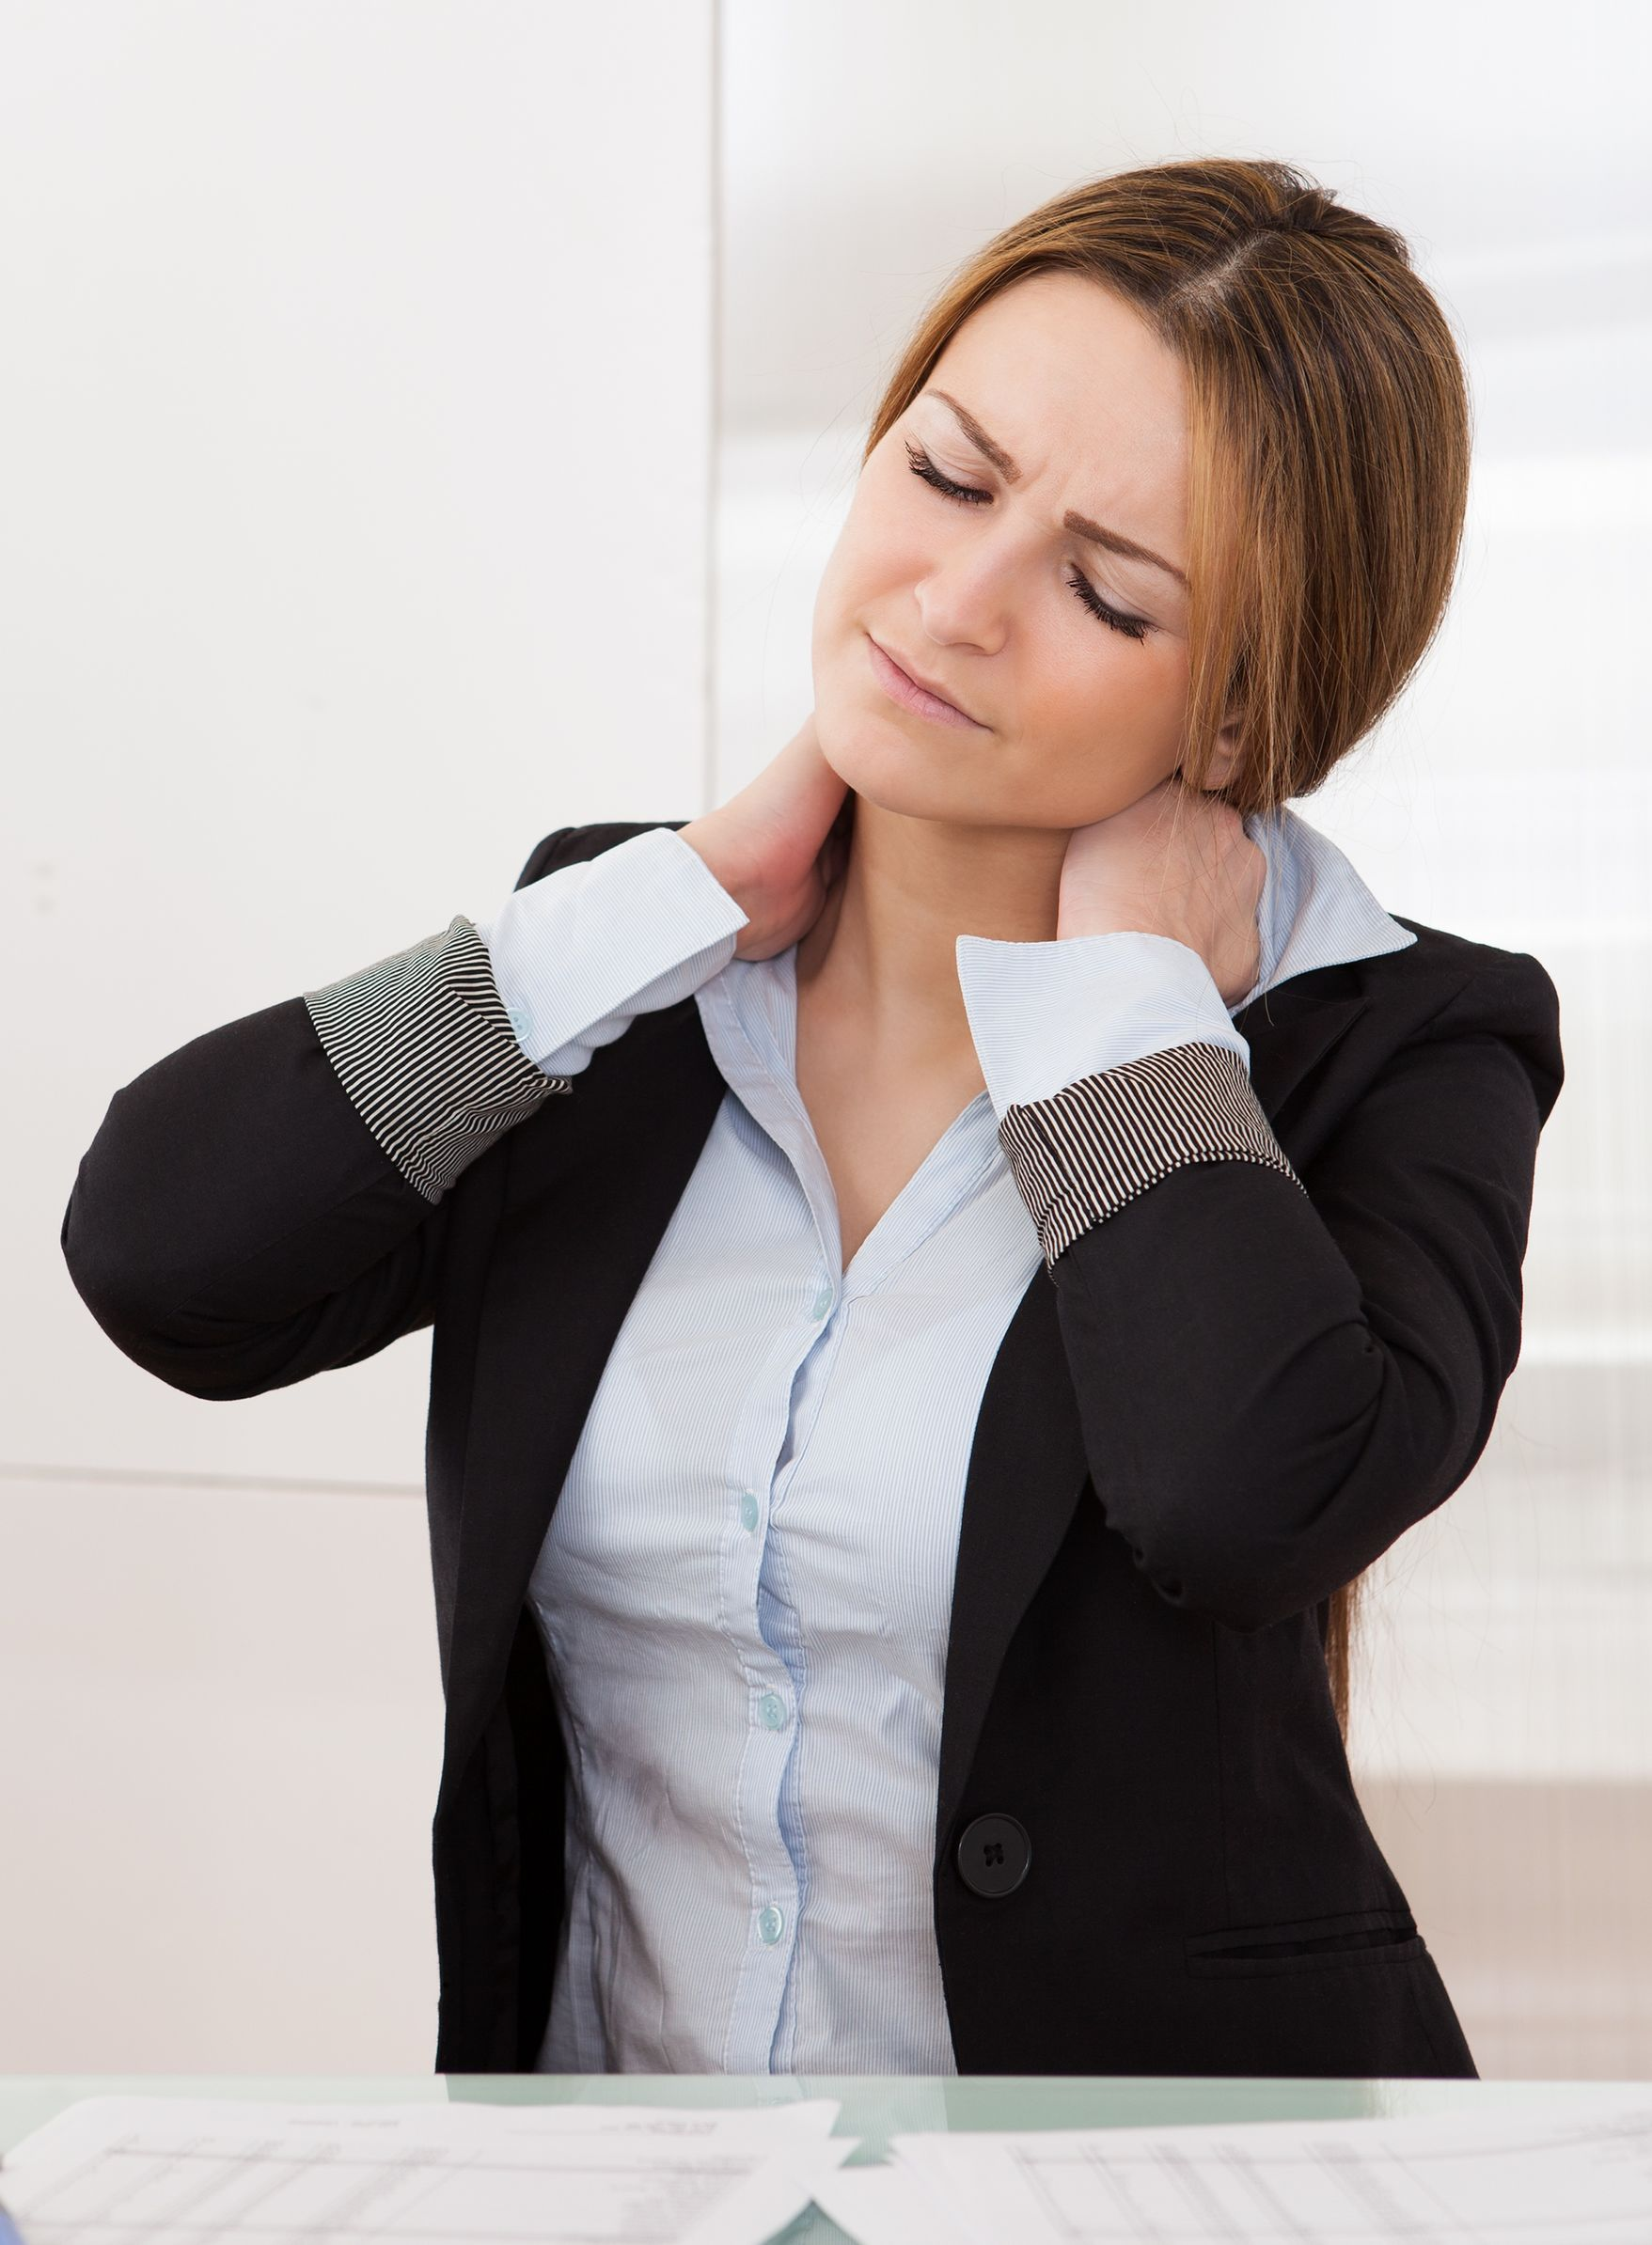 19168037 - young attractive businesswoman suffer from neck pain